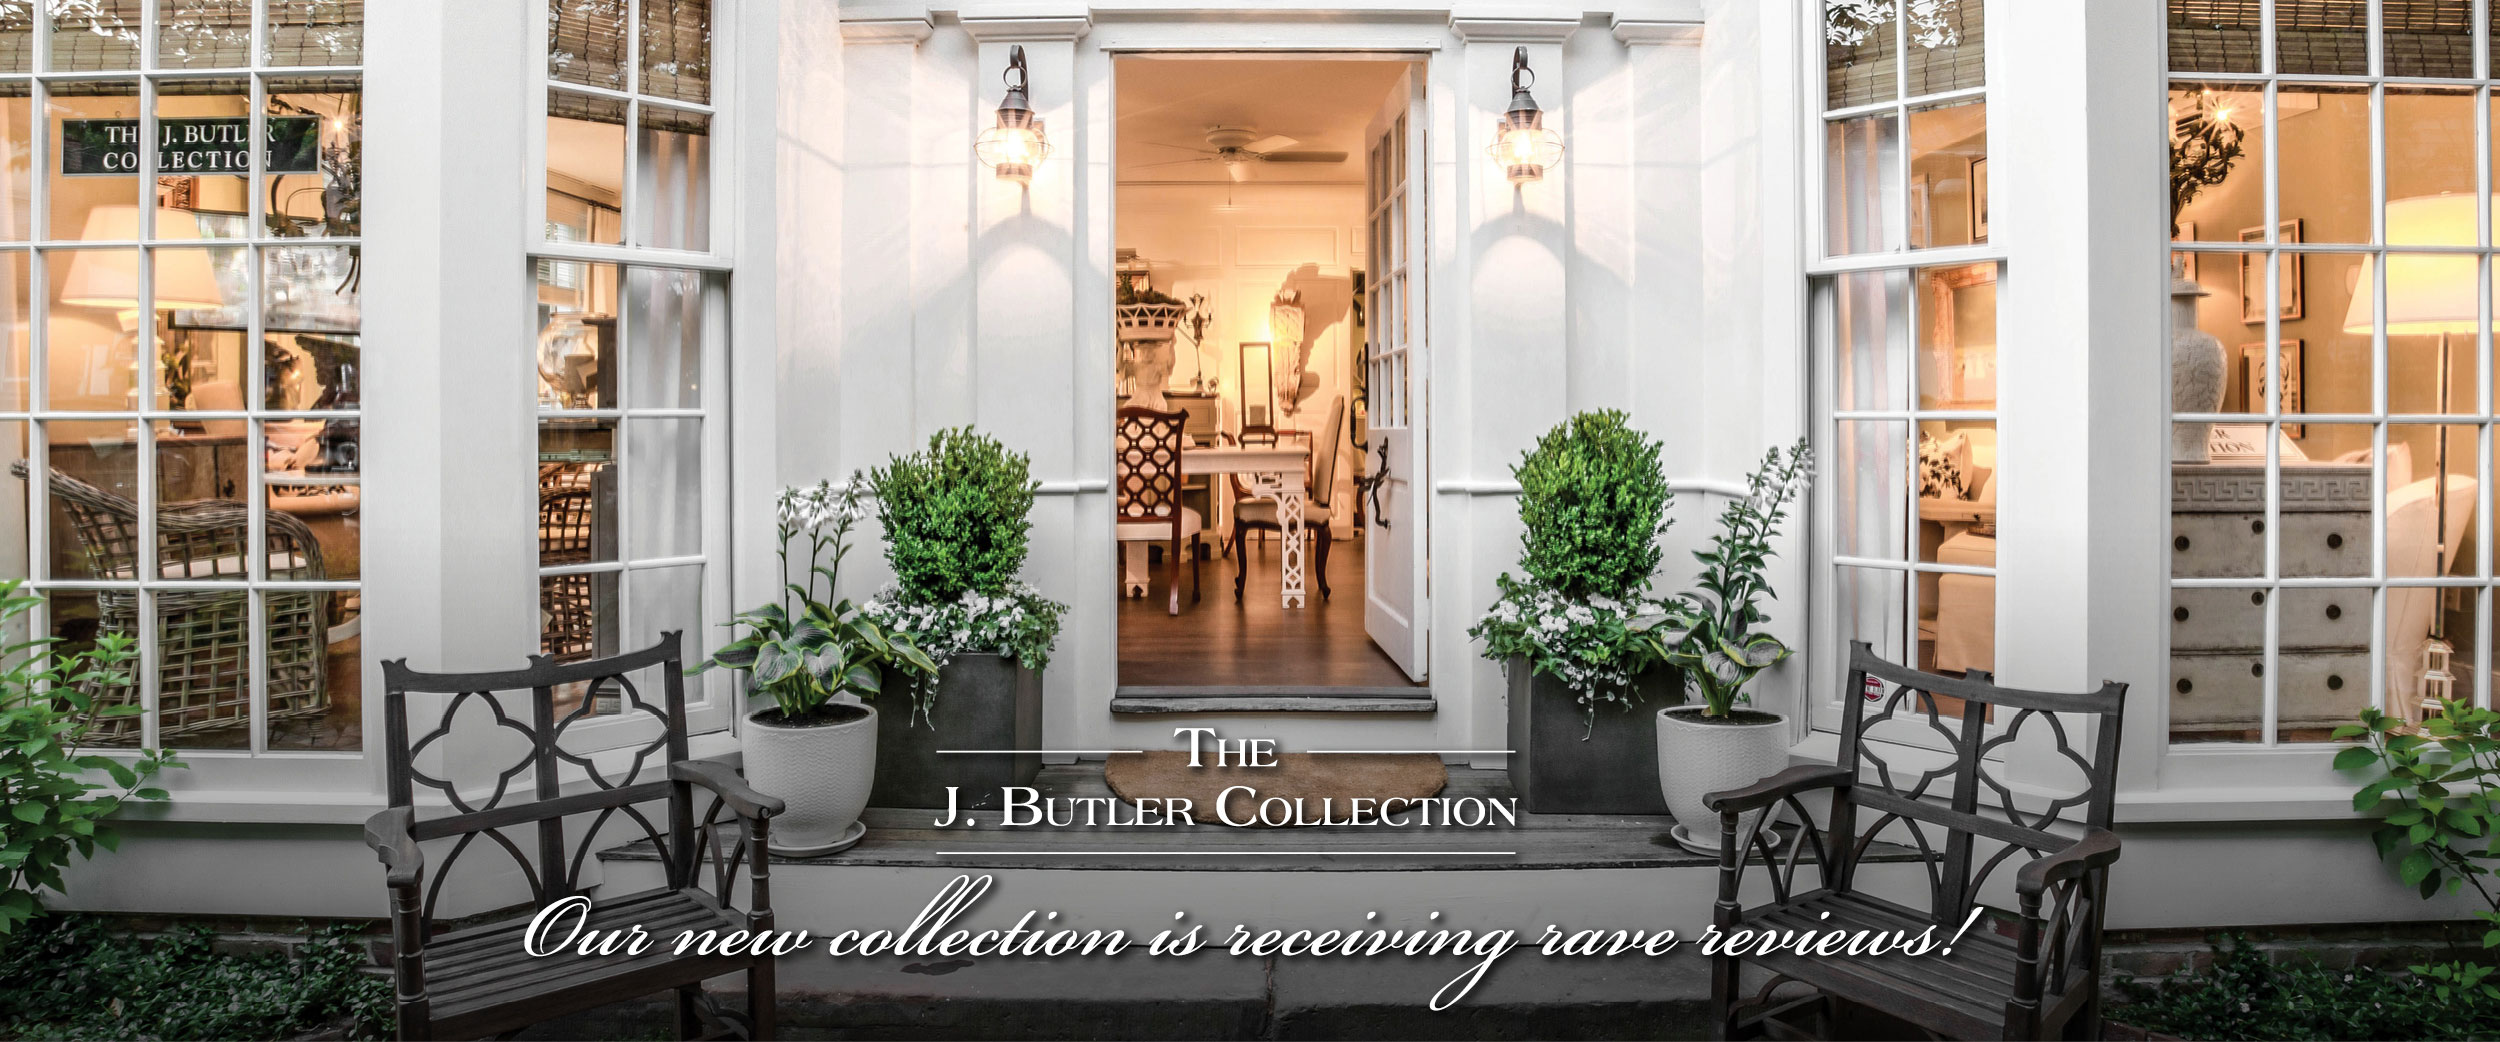 the j Butler Collection receives rave reviews